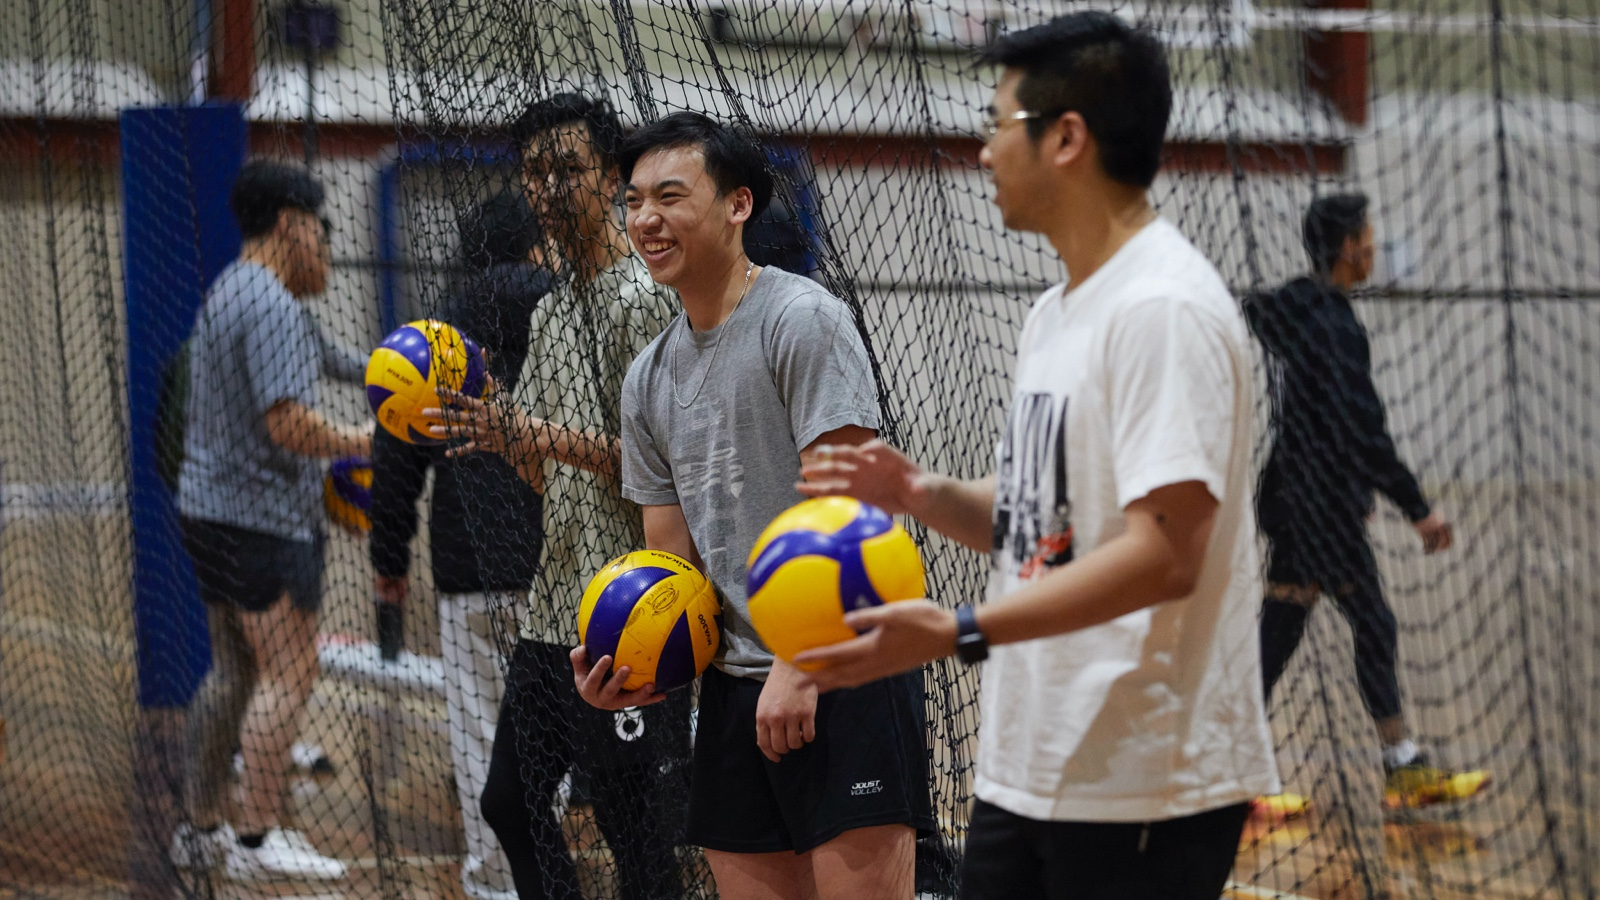 Two male Volleyball players about to start playing